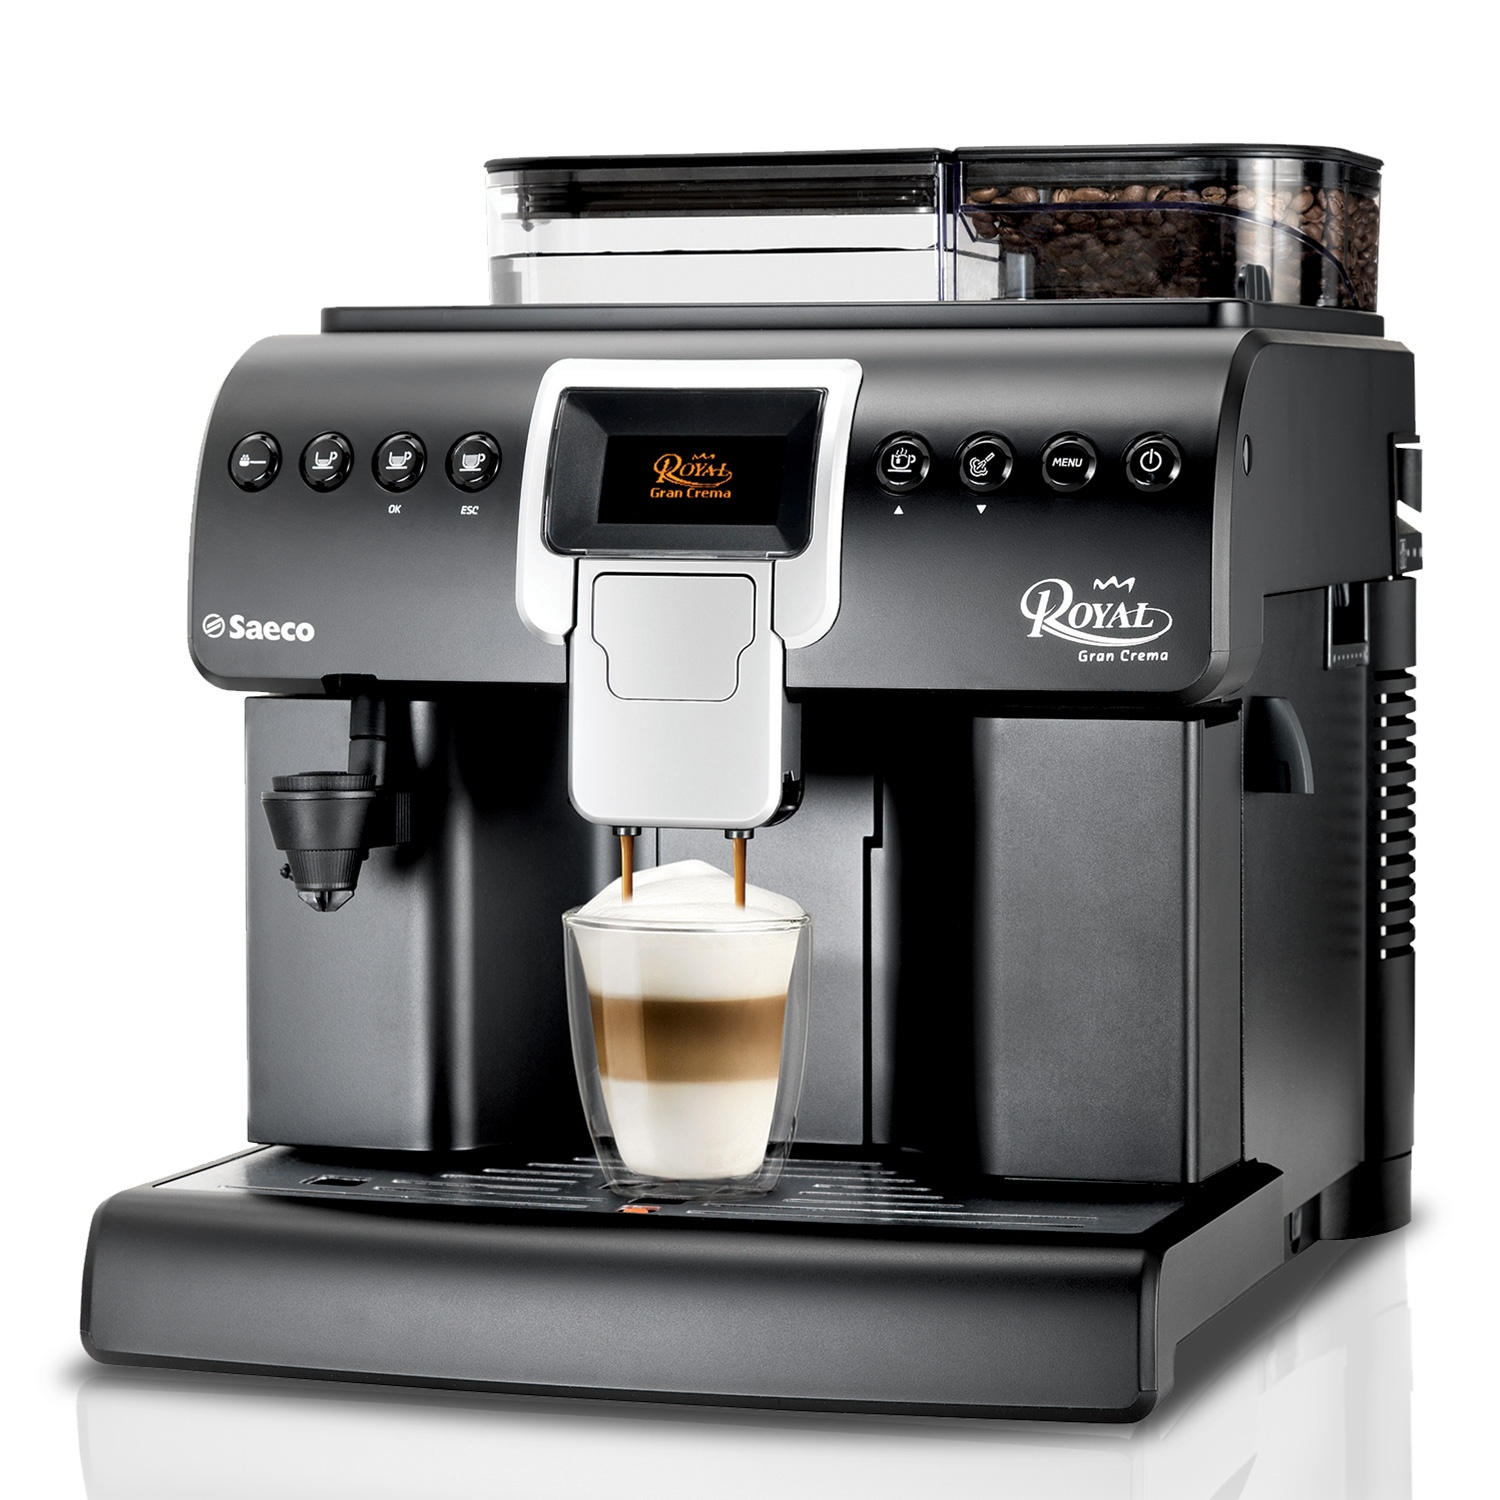 automatic bean to cup coffee machine saeco royal grand crema. Black Bedroom Furniture Sets. Home Design Ideas